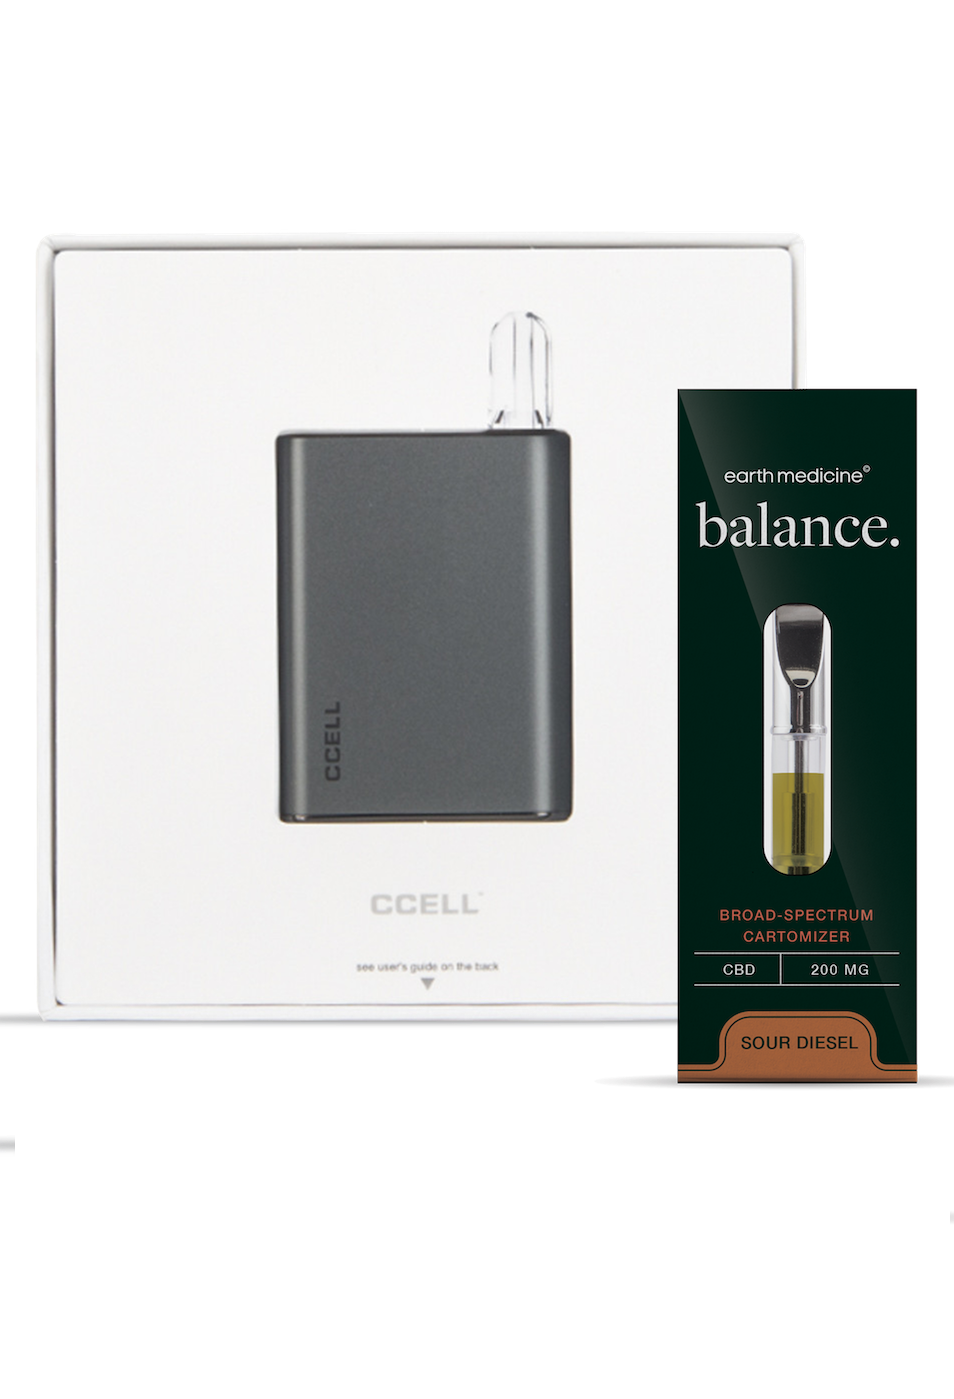 balance - Sour Diesel Broad-Spectrum Carto Starter Kit